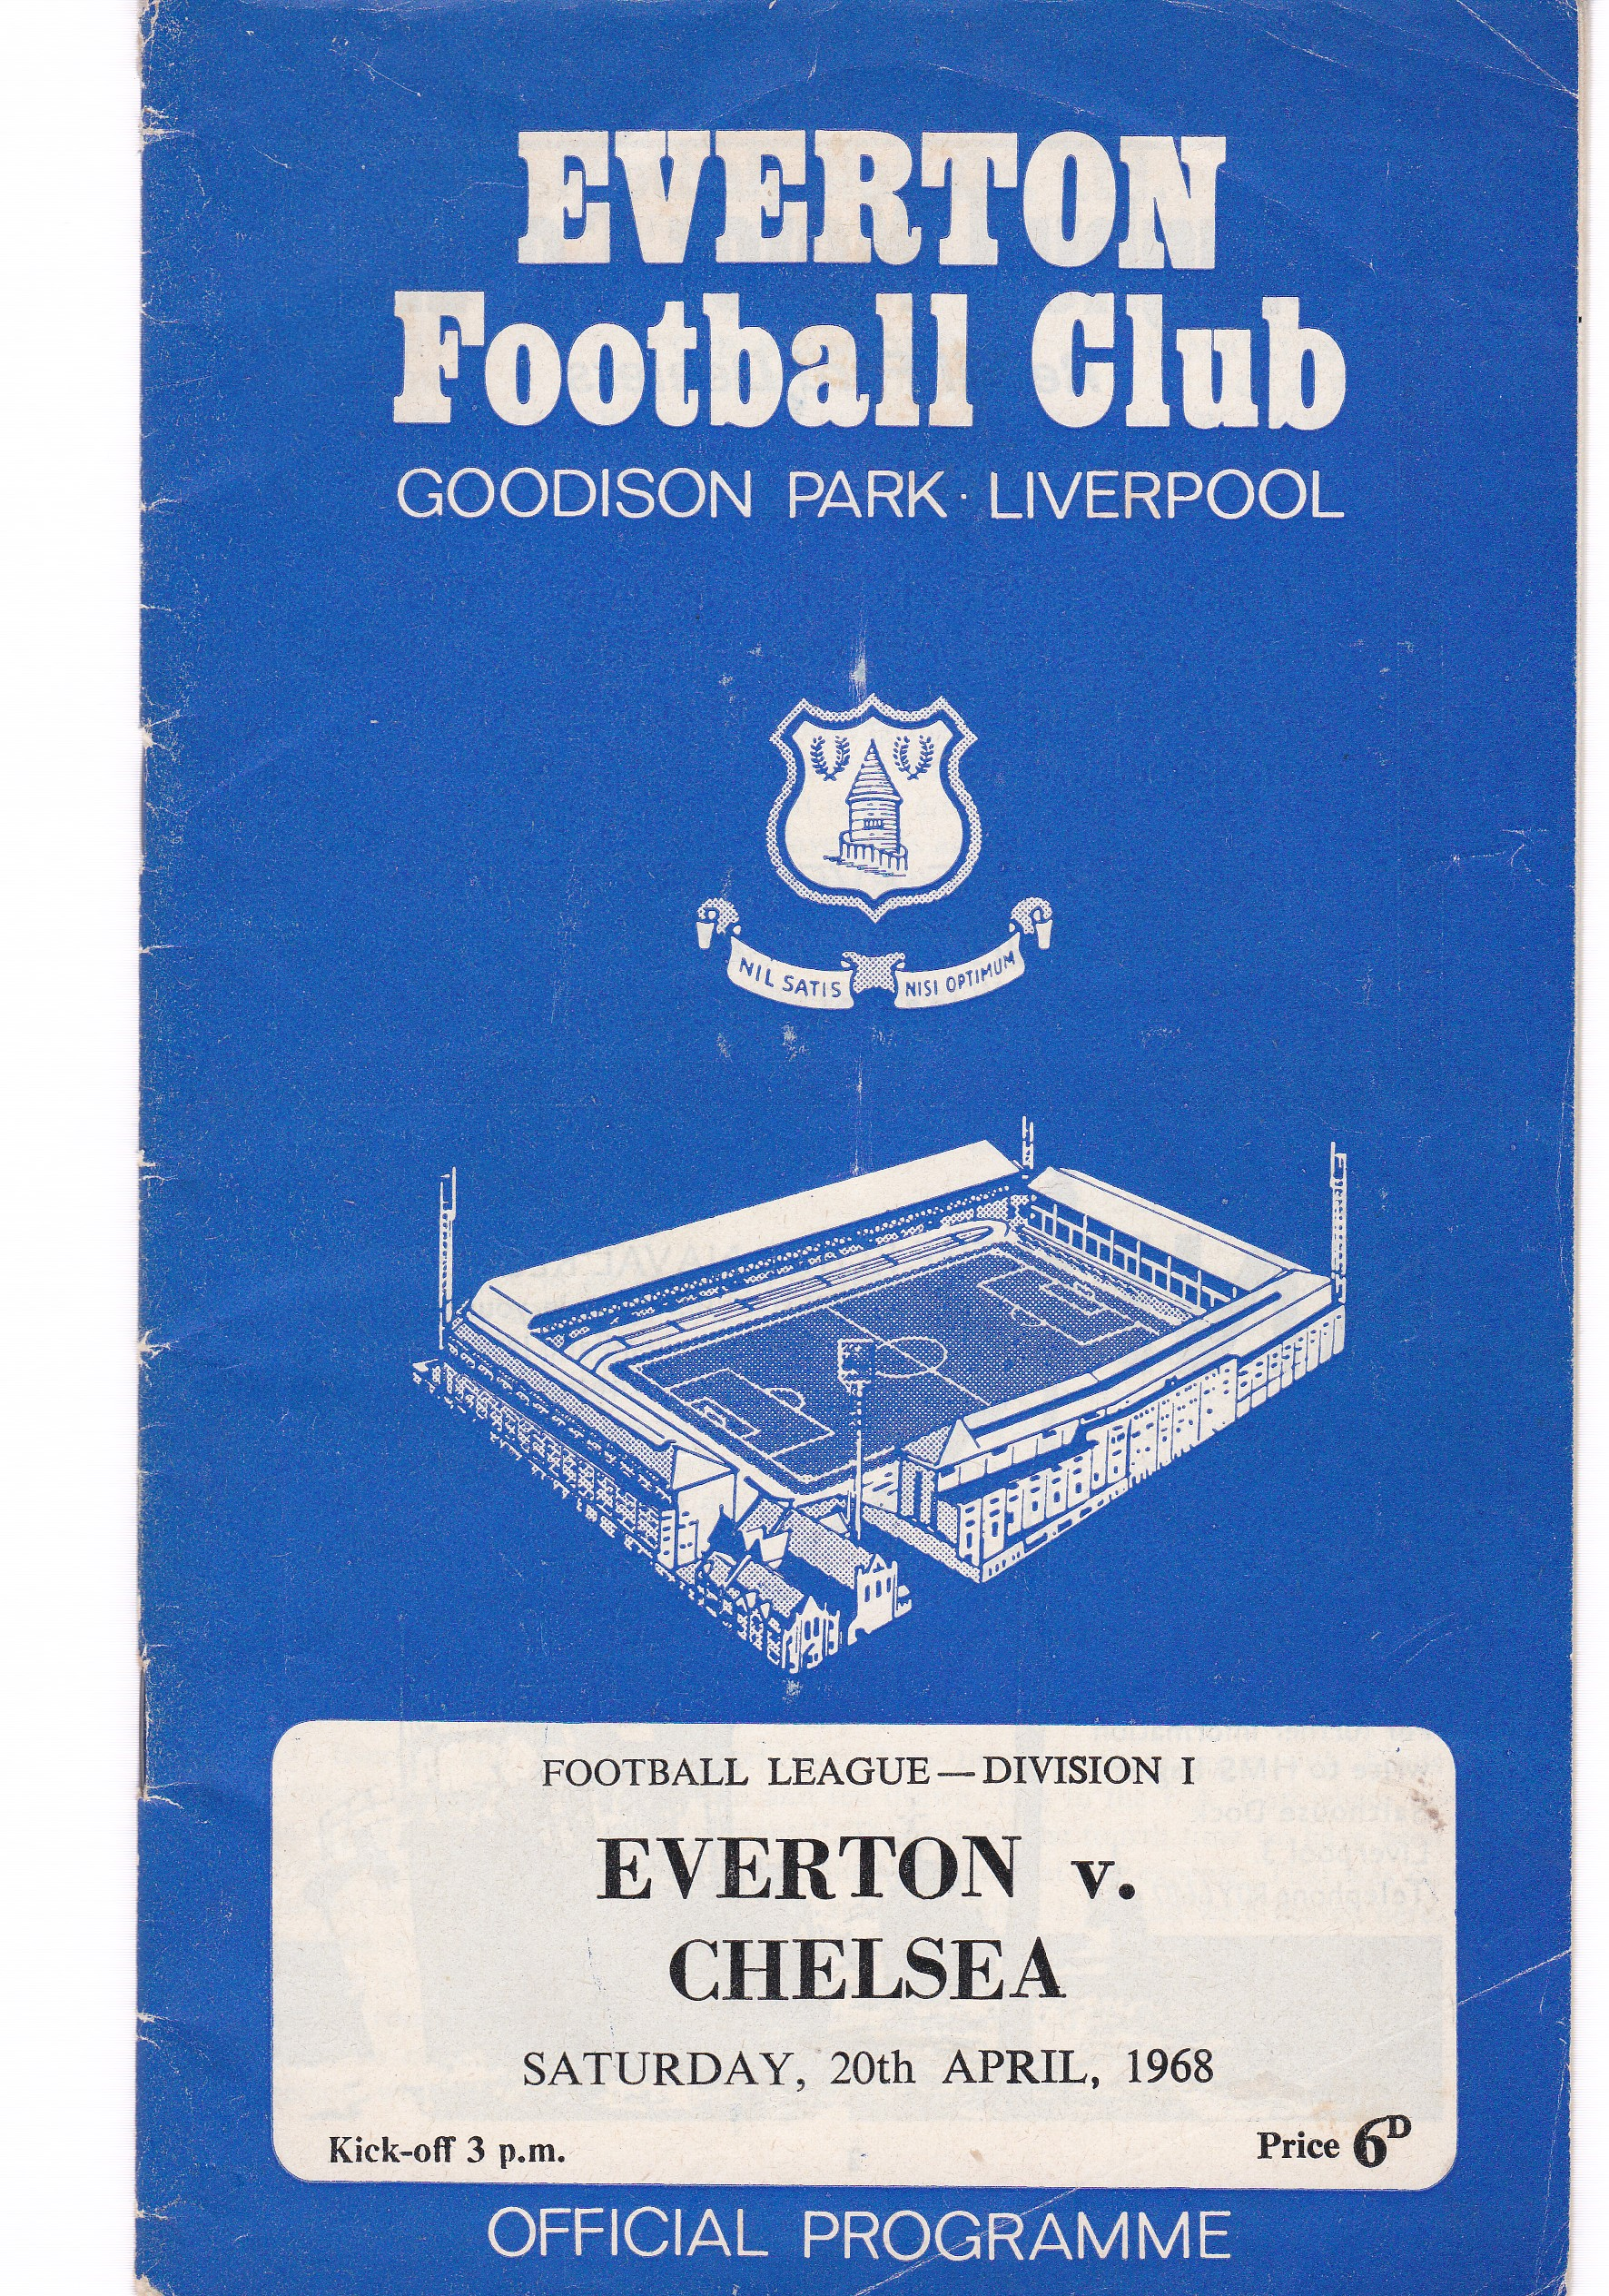 Everton v Chelsea 1968 April 20th League and courtesy of the club Football League Review vol 2 no